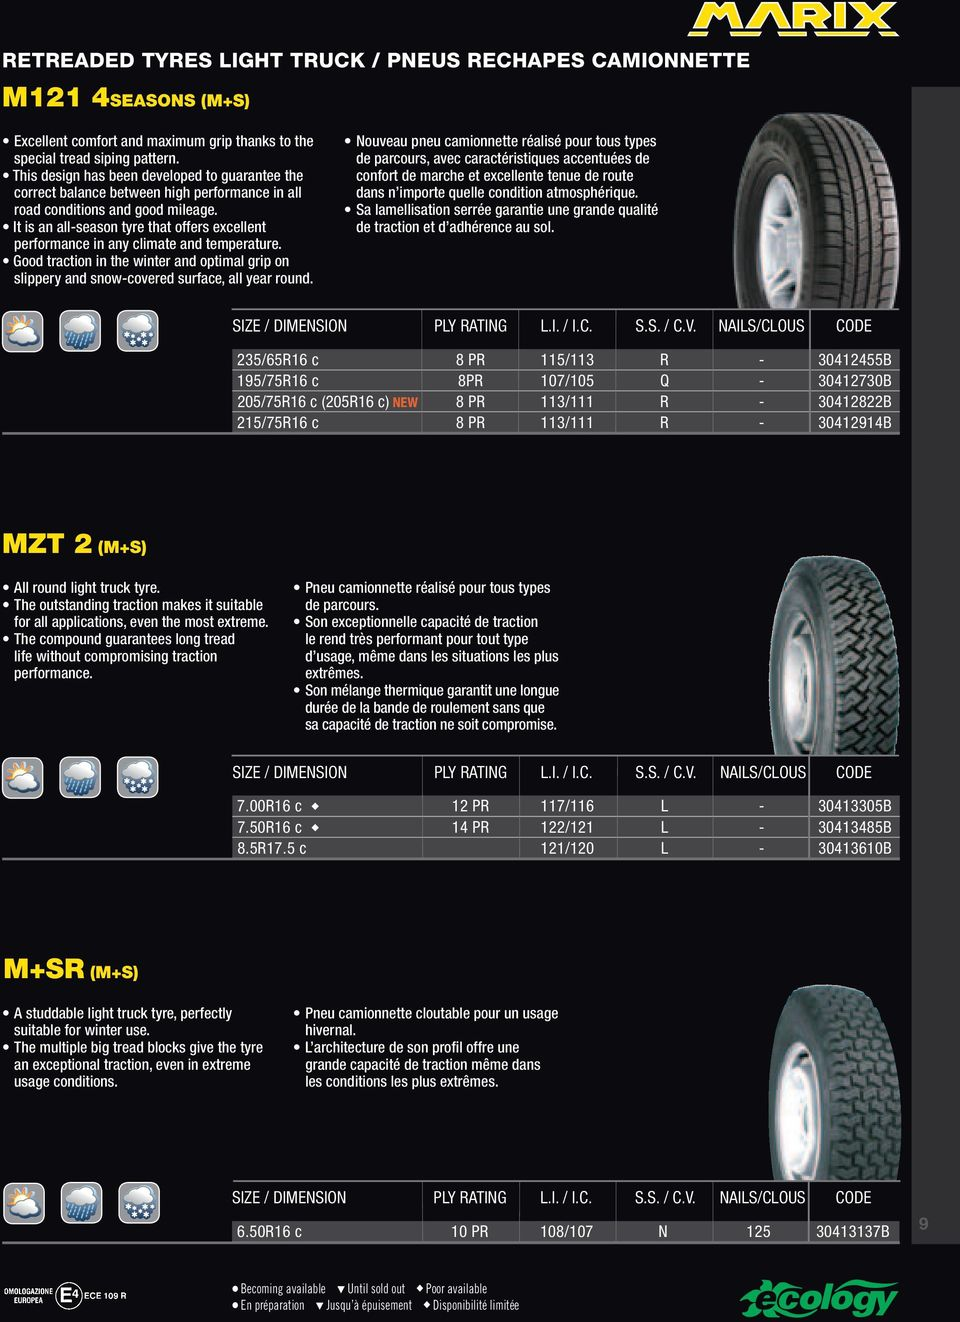 It is an all-season tyre that offers excellent performance in any climate and temperature. Good traction in the winter and optimal grip on slippery and snow-covered surface, all year round.